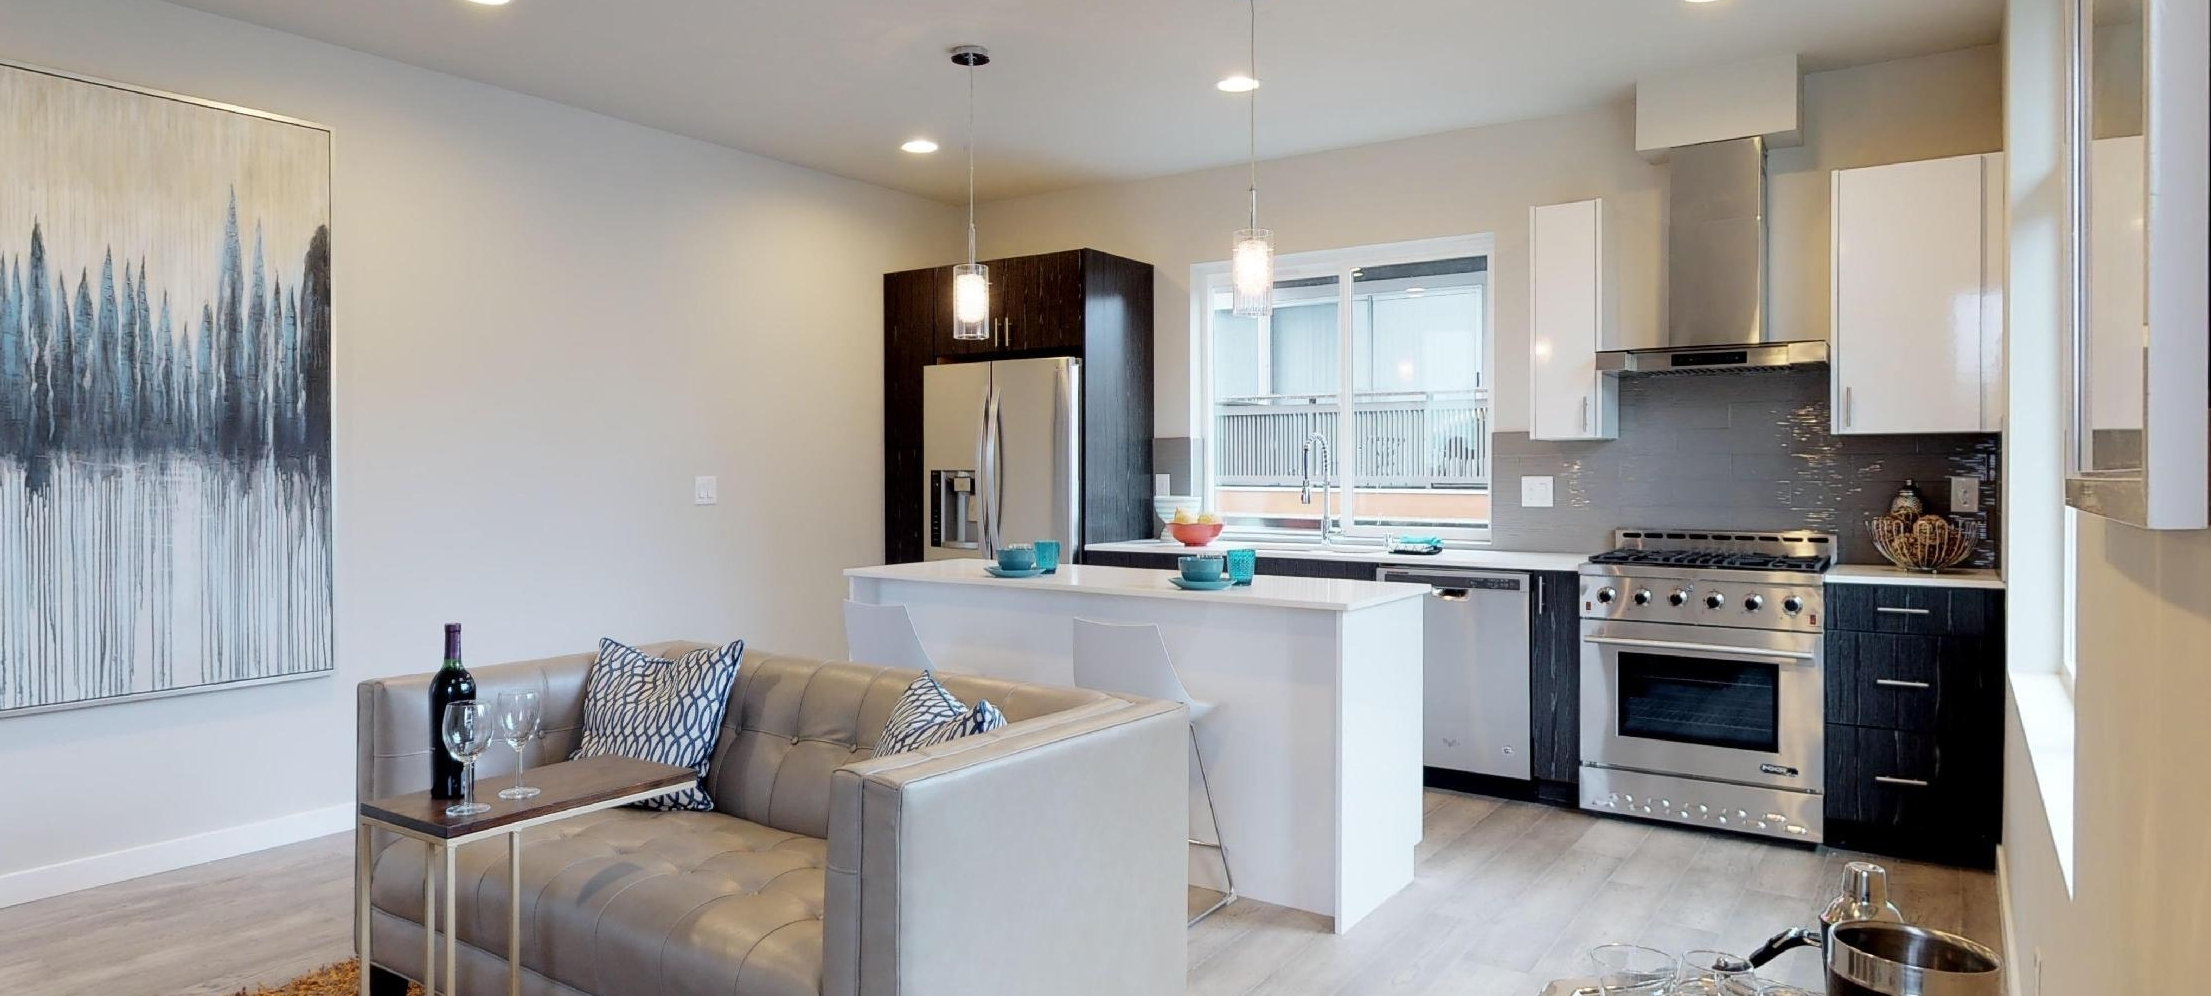 3418 Renton Place Townhomes